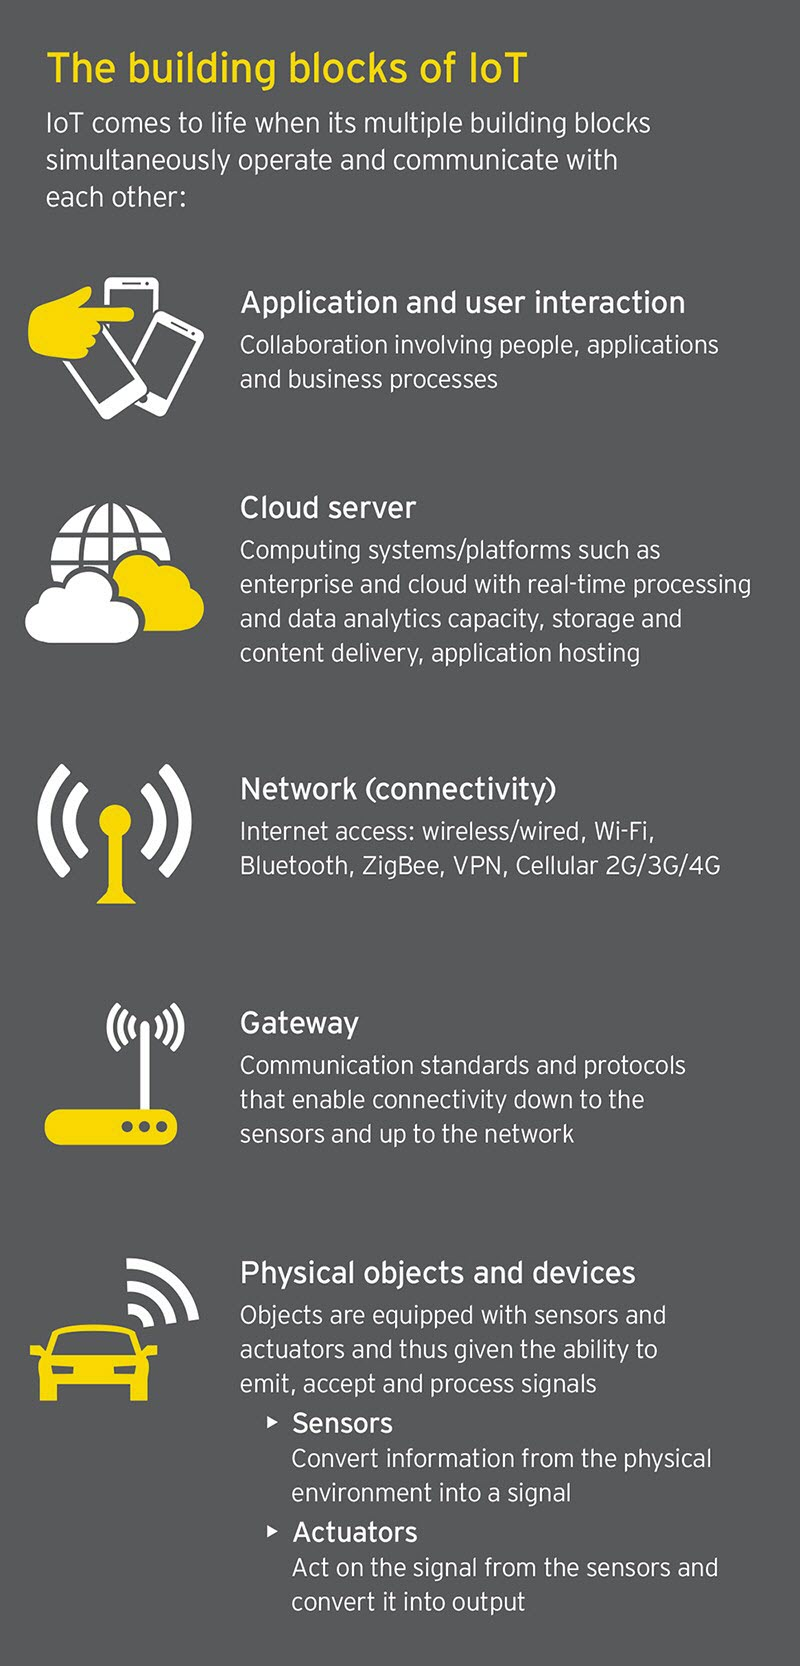 EY - The building blocks of IoT